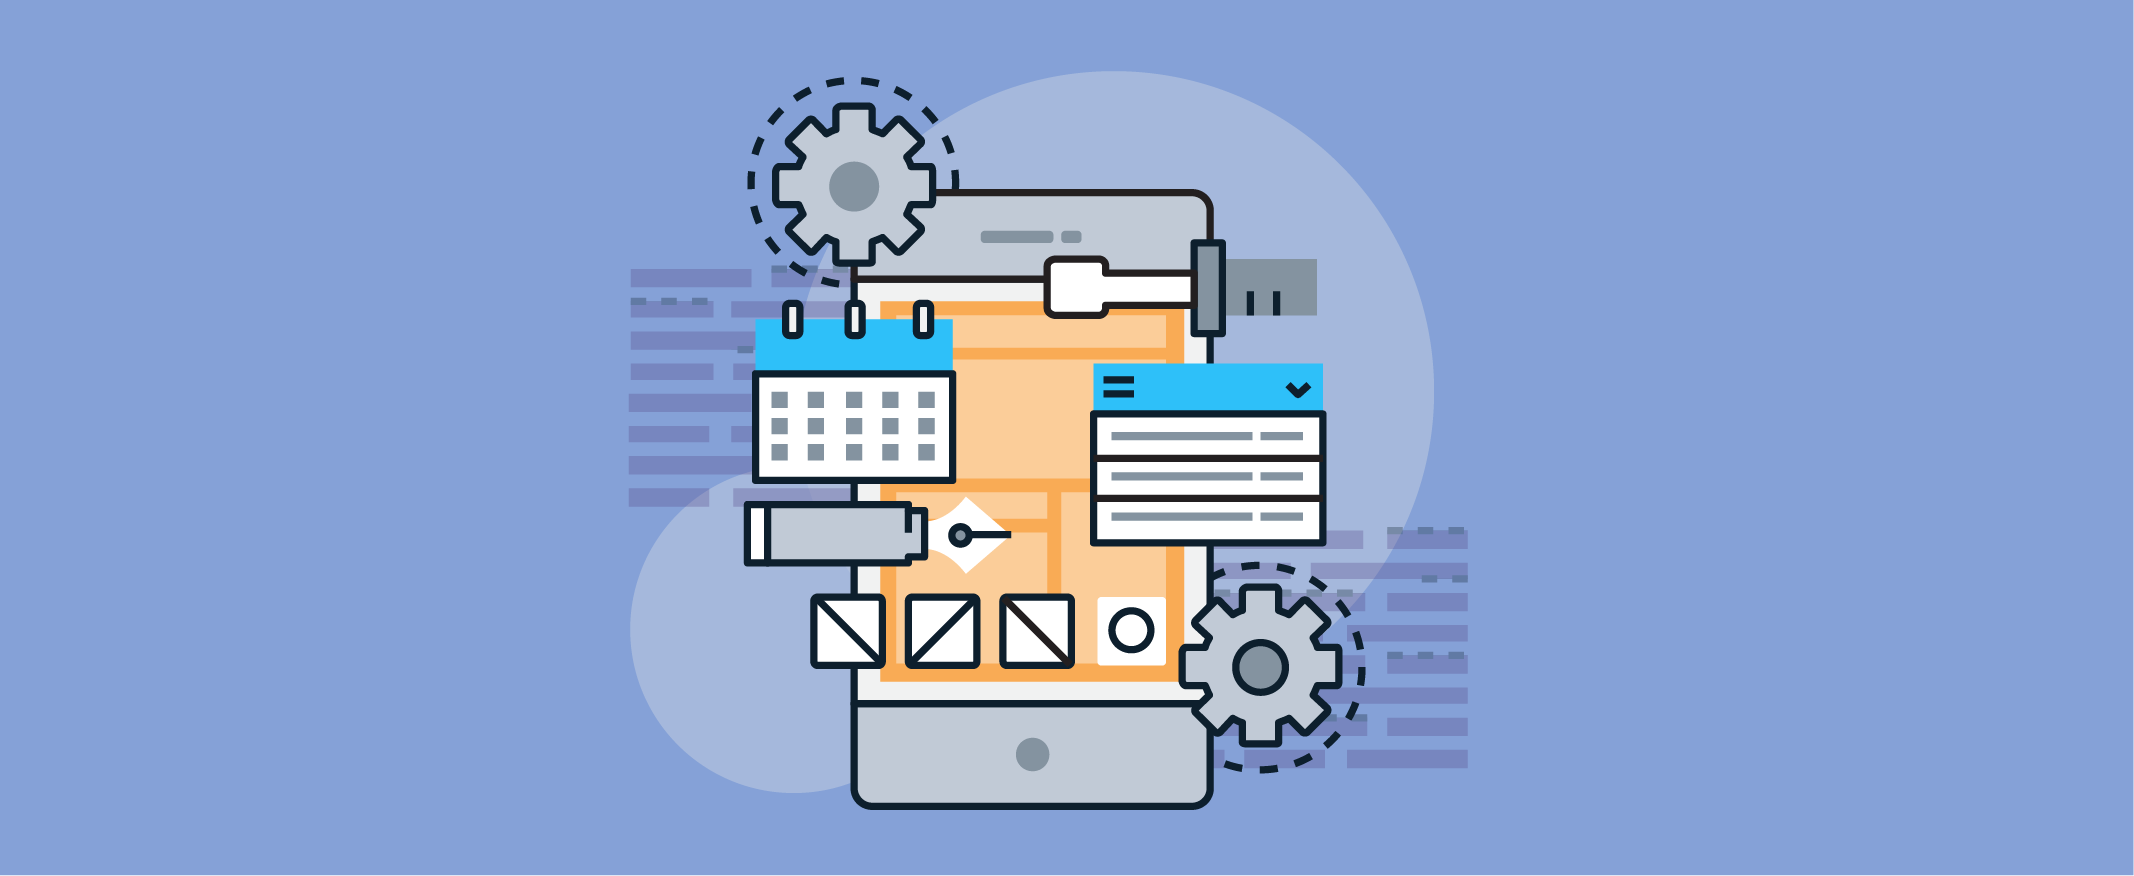 Calculating Mobile App Development Cost - An Easy Guide to App Creation Pricing